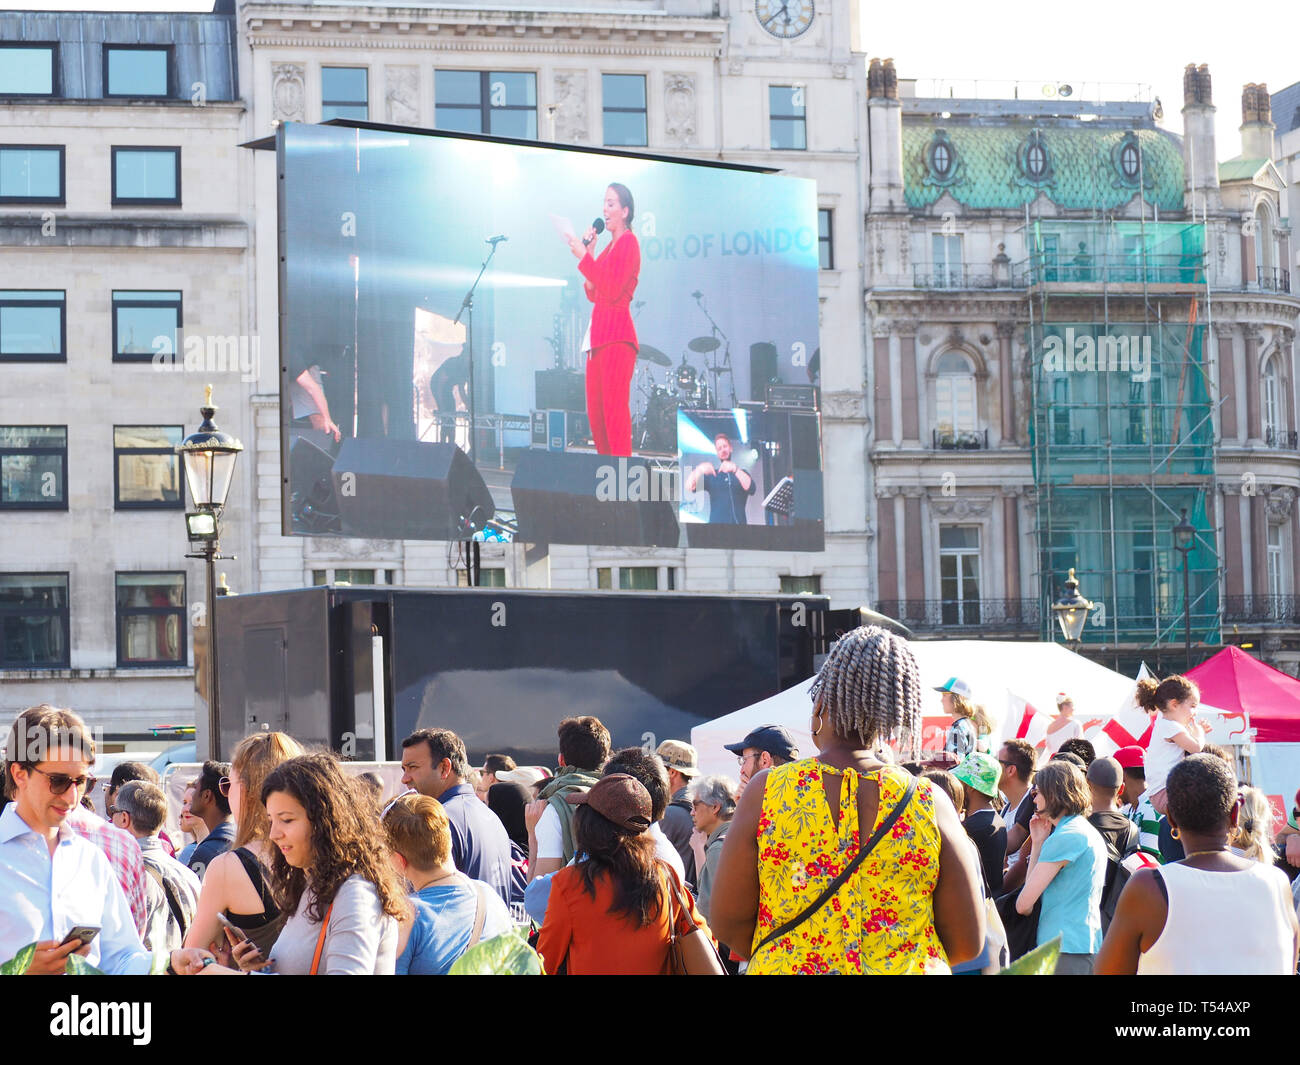 London, UK. 20th Apr 2019. The Feast of St George in Trafalgar Square - Stock Image